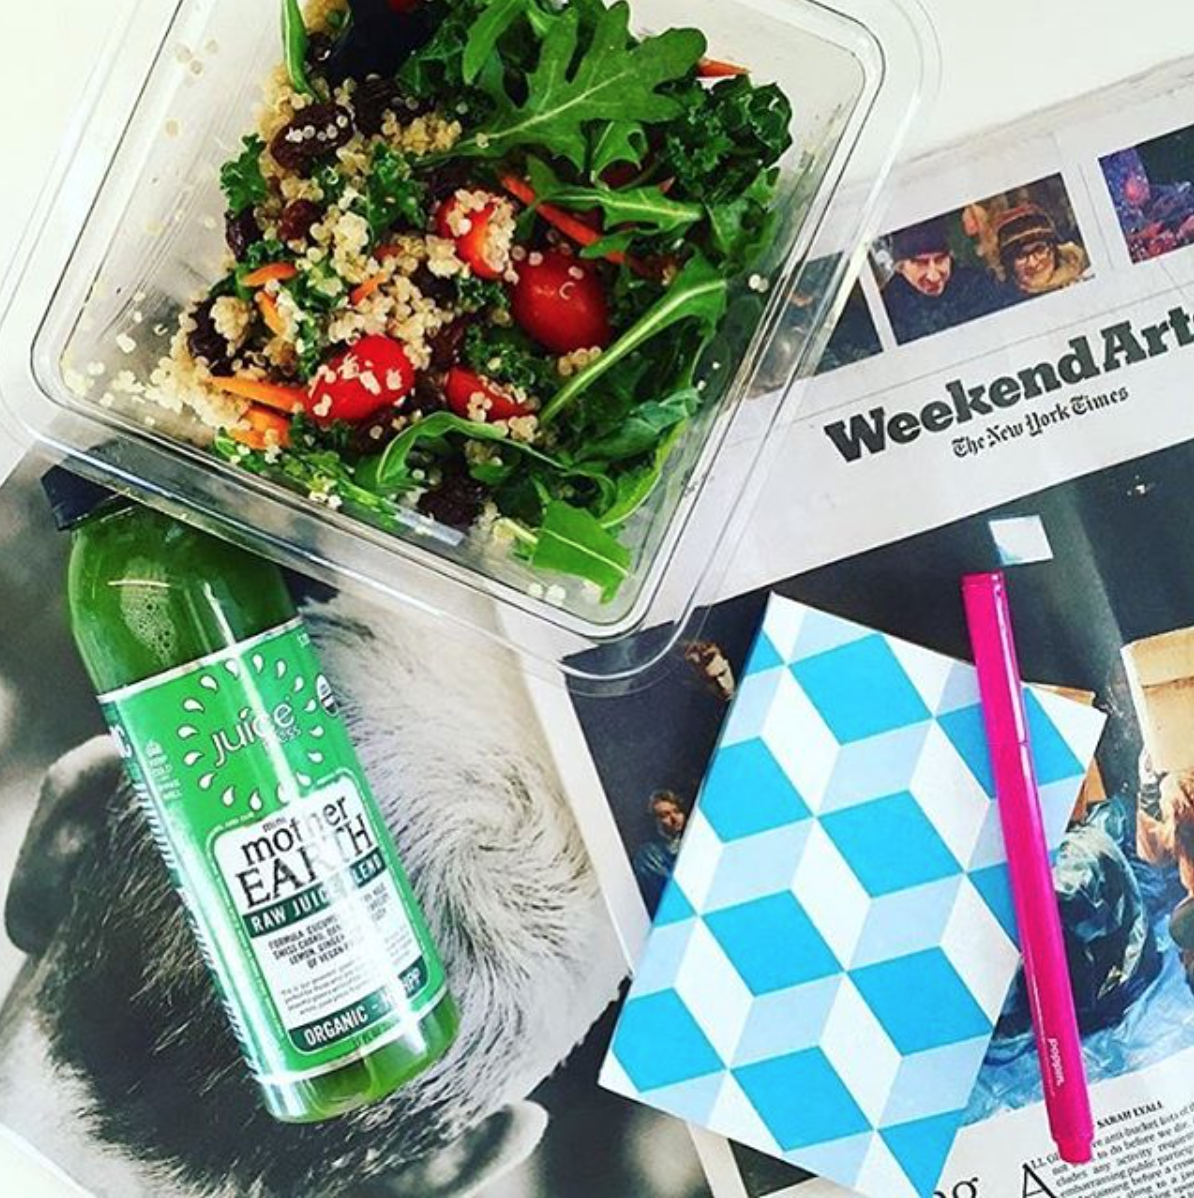 what are your weekend plans? #jplifestyle #juicepress great photo by @@CRBarberich of @Refinery29pic.twitter.com/Rwr4AfCopk